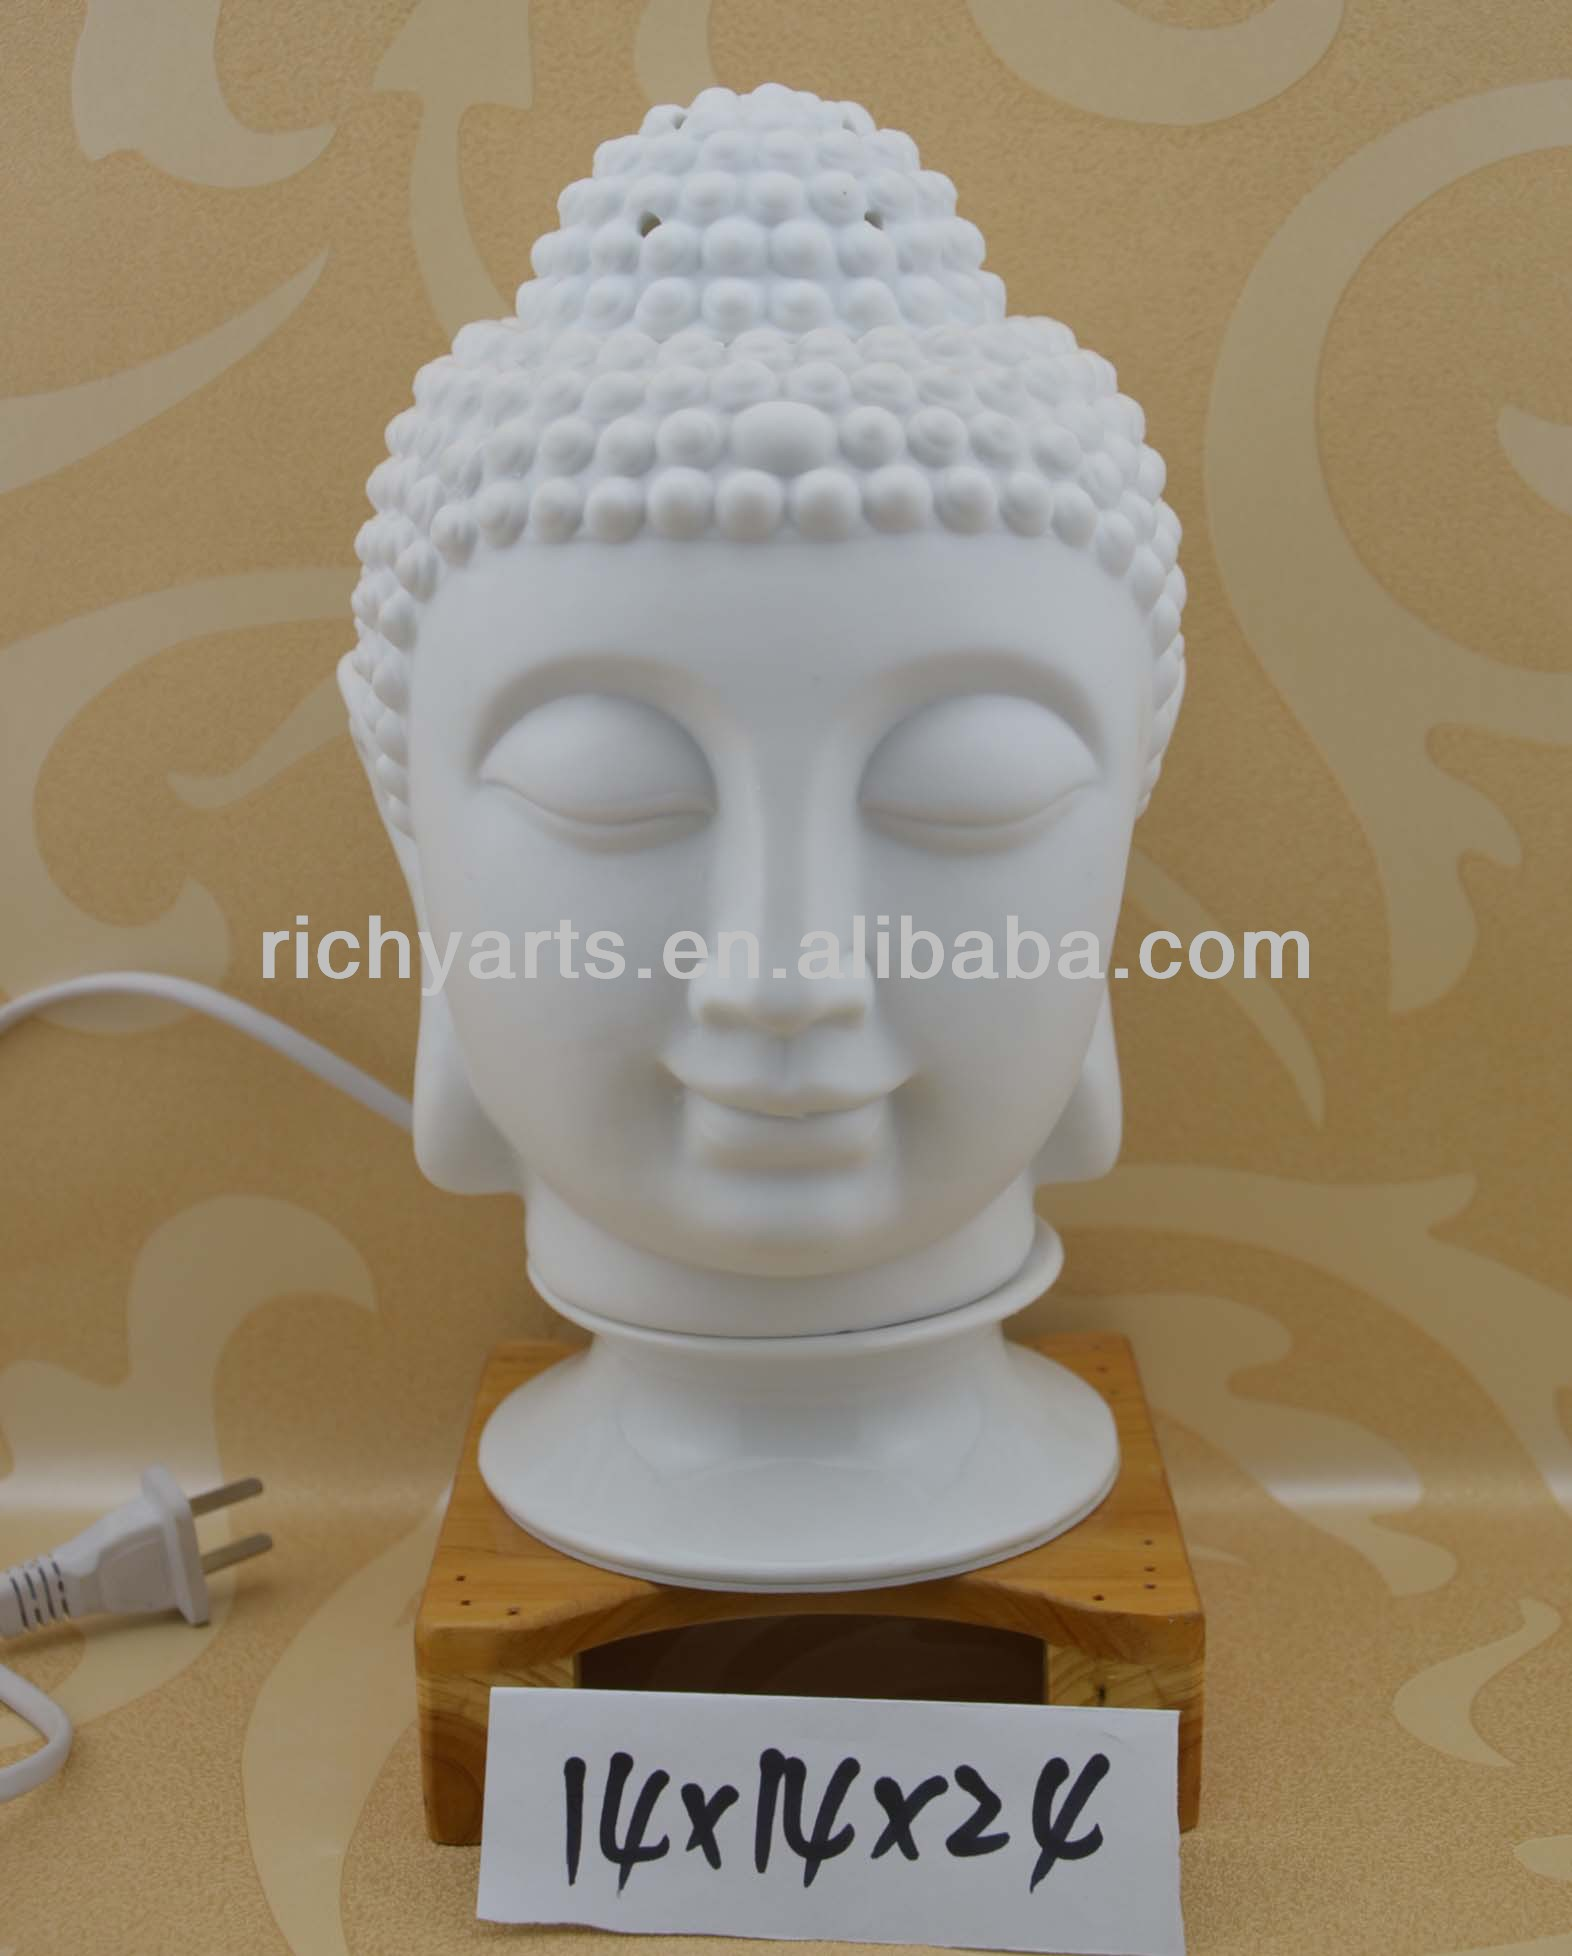 hand made white ceramic electric oil burner lamp with fragrance function